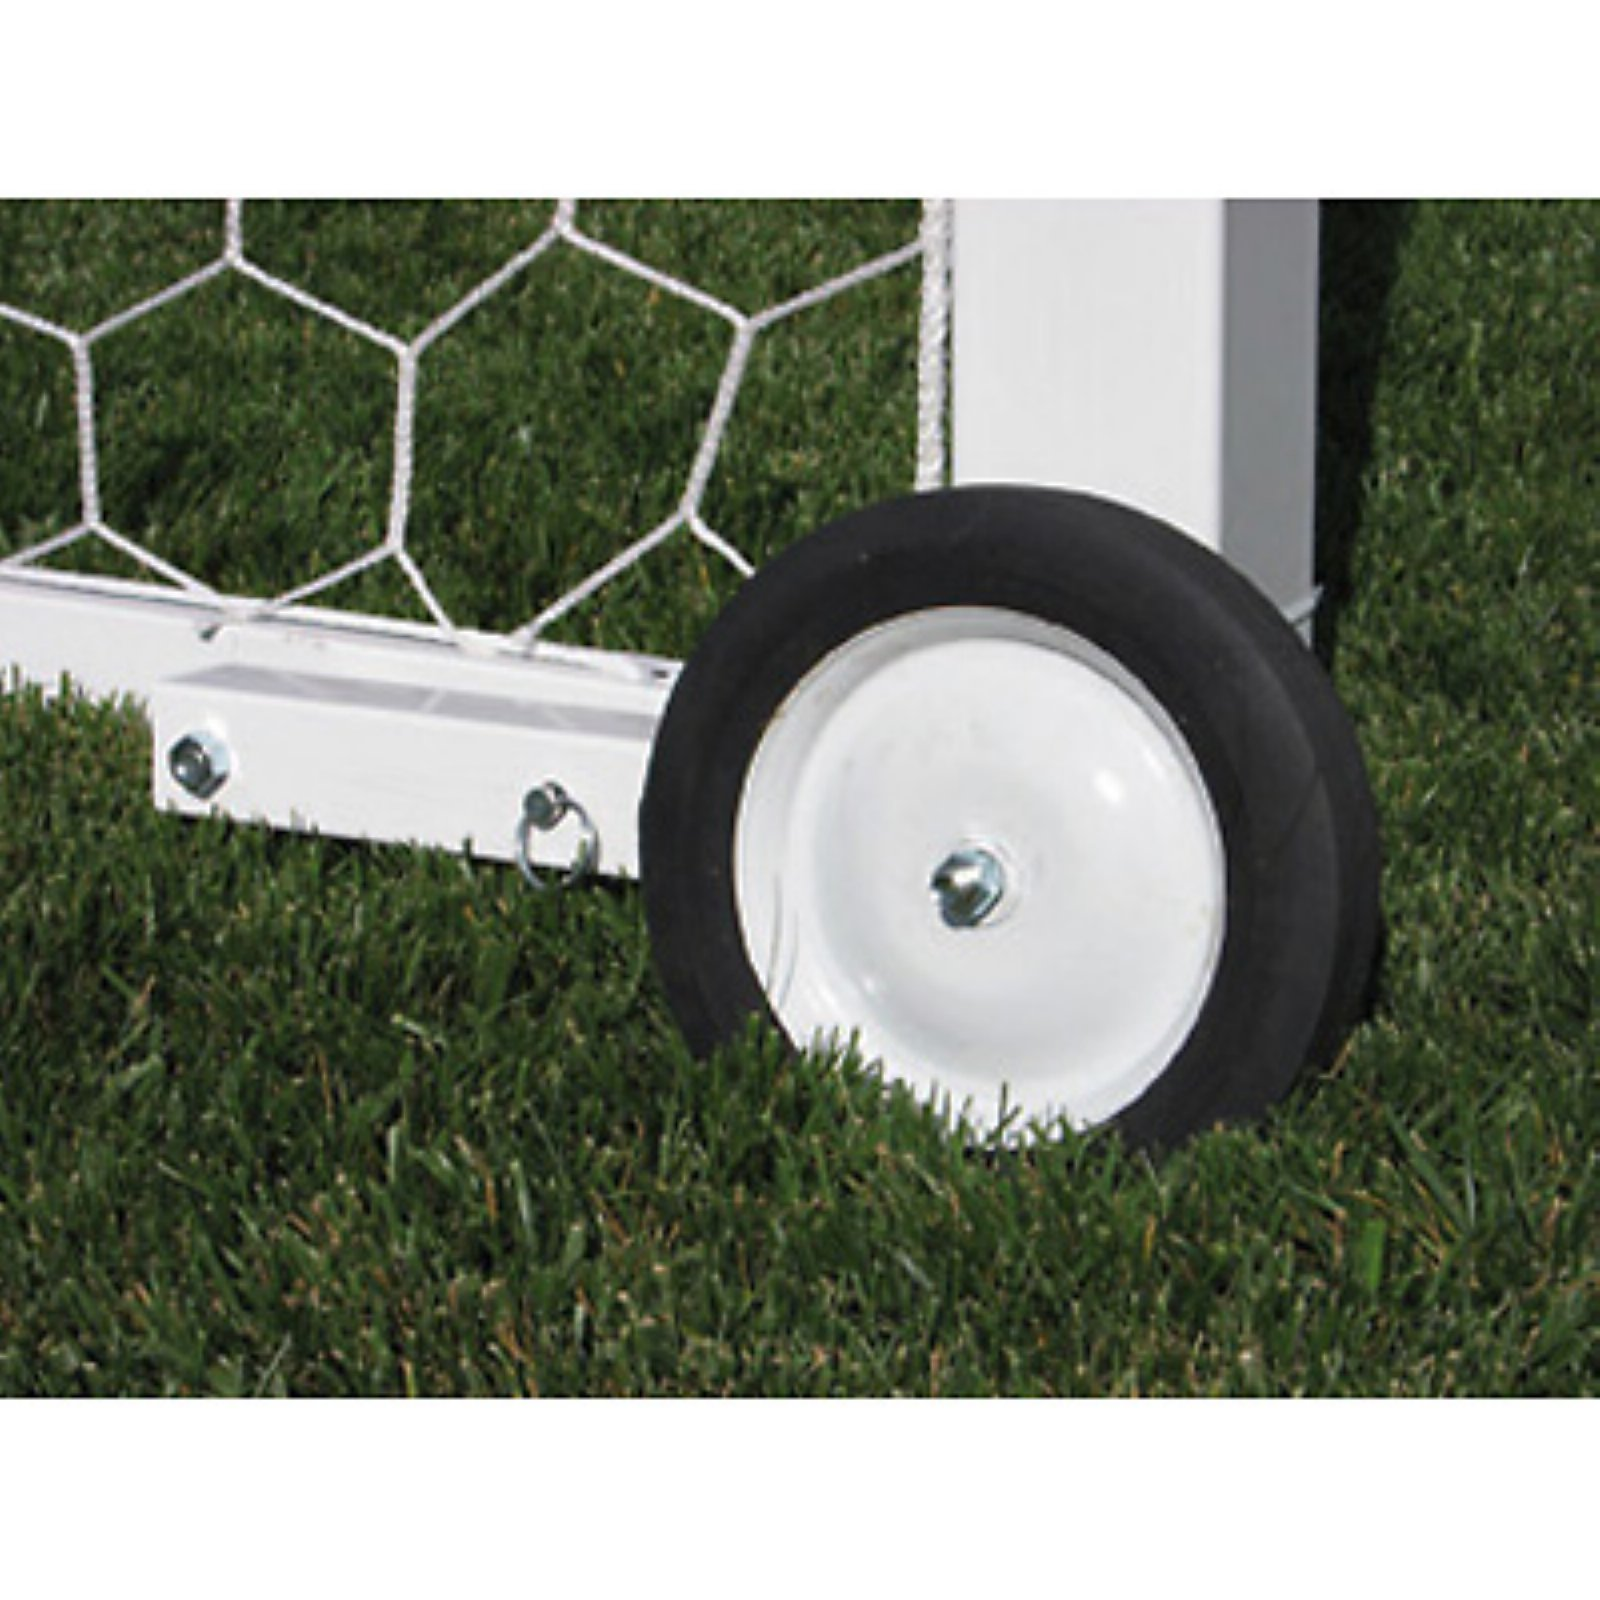 First Team Portable Wheel Kit for Soccer Goals